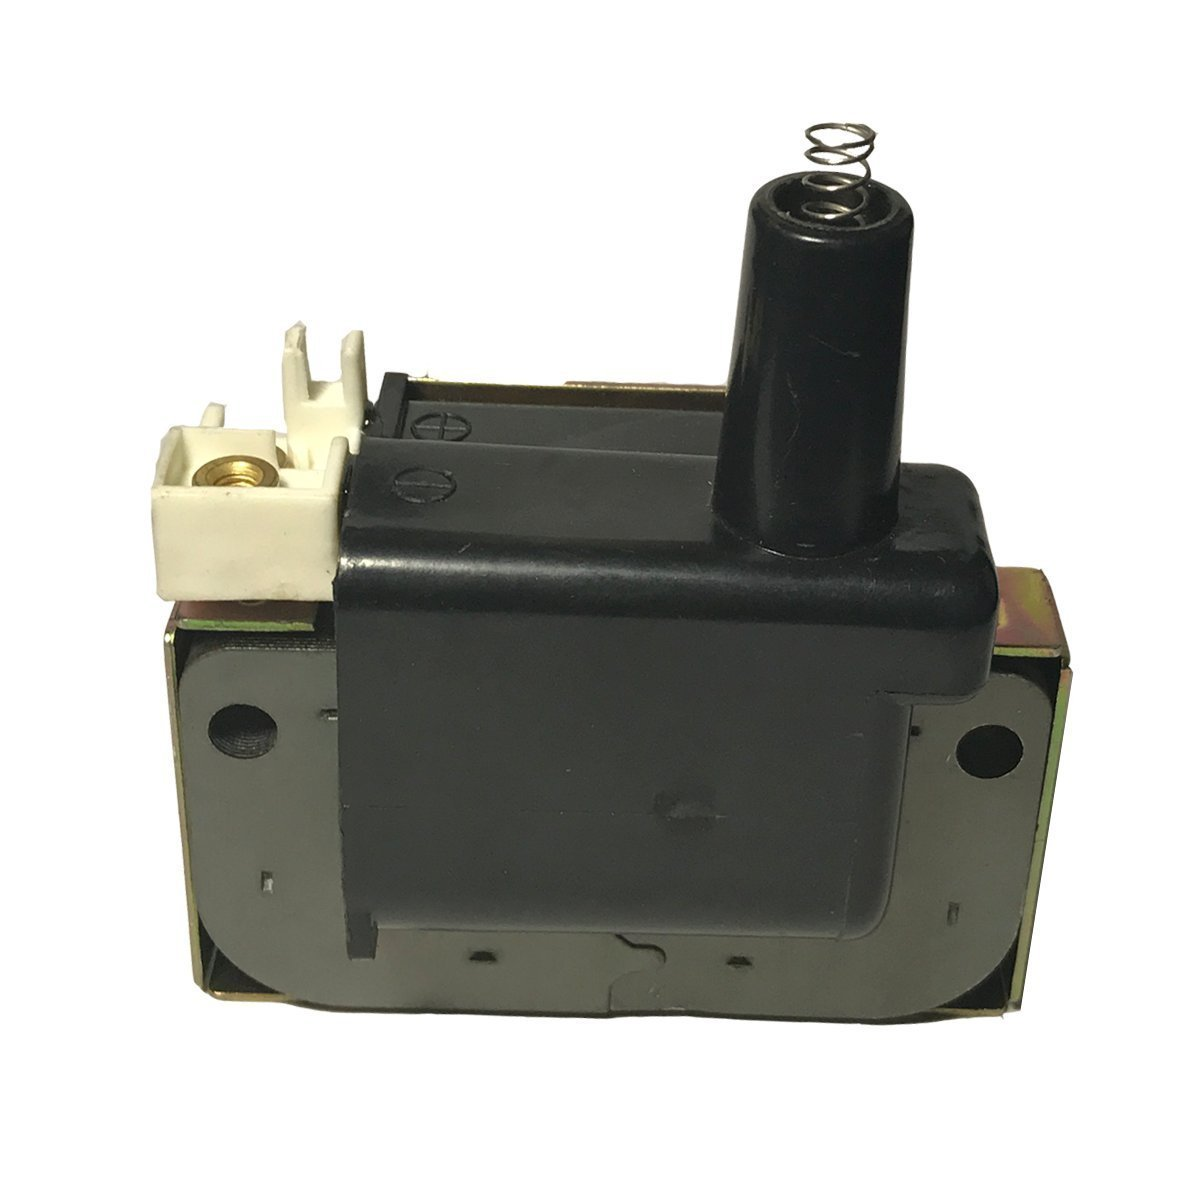 Ignition Coil Replaces 30510 Pt2 006 30500 Paa A01 19972000 Honda Crv Electrical Troubleshooting Manual Original P73 Fits Acura Civic Accord Integra 16l 18l 22l